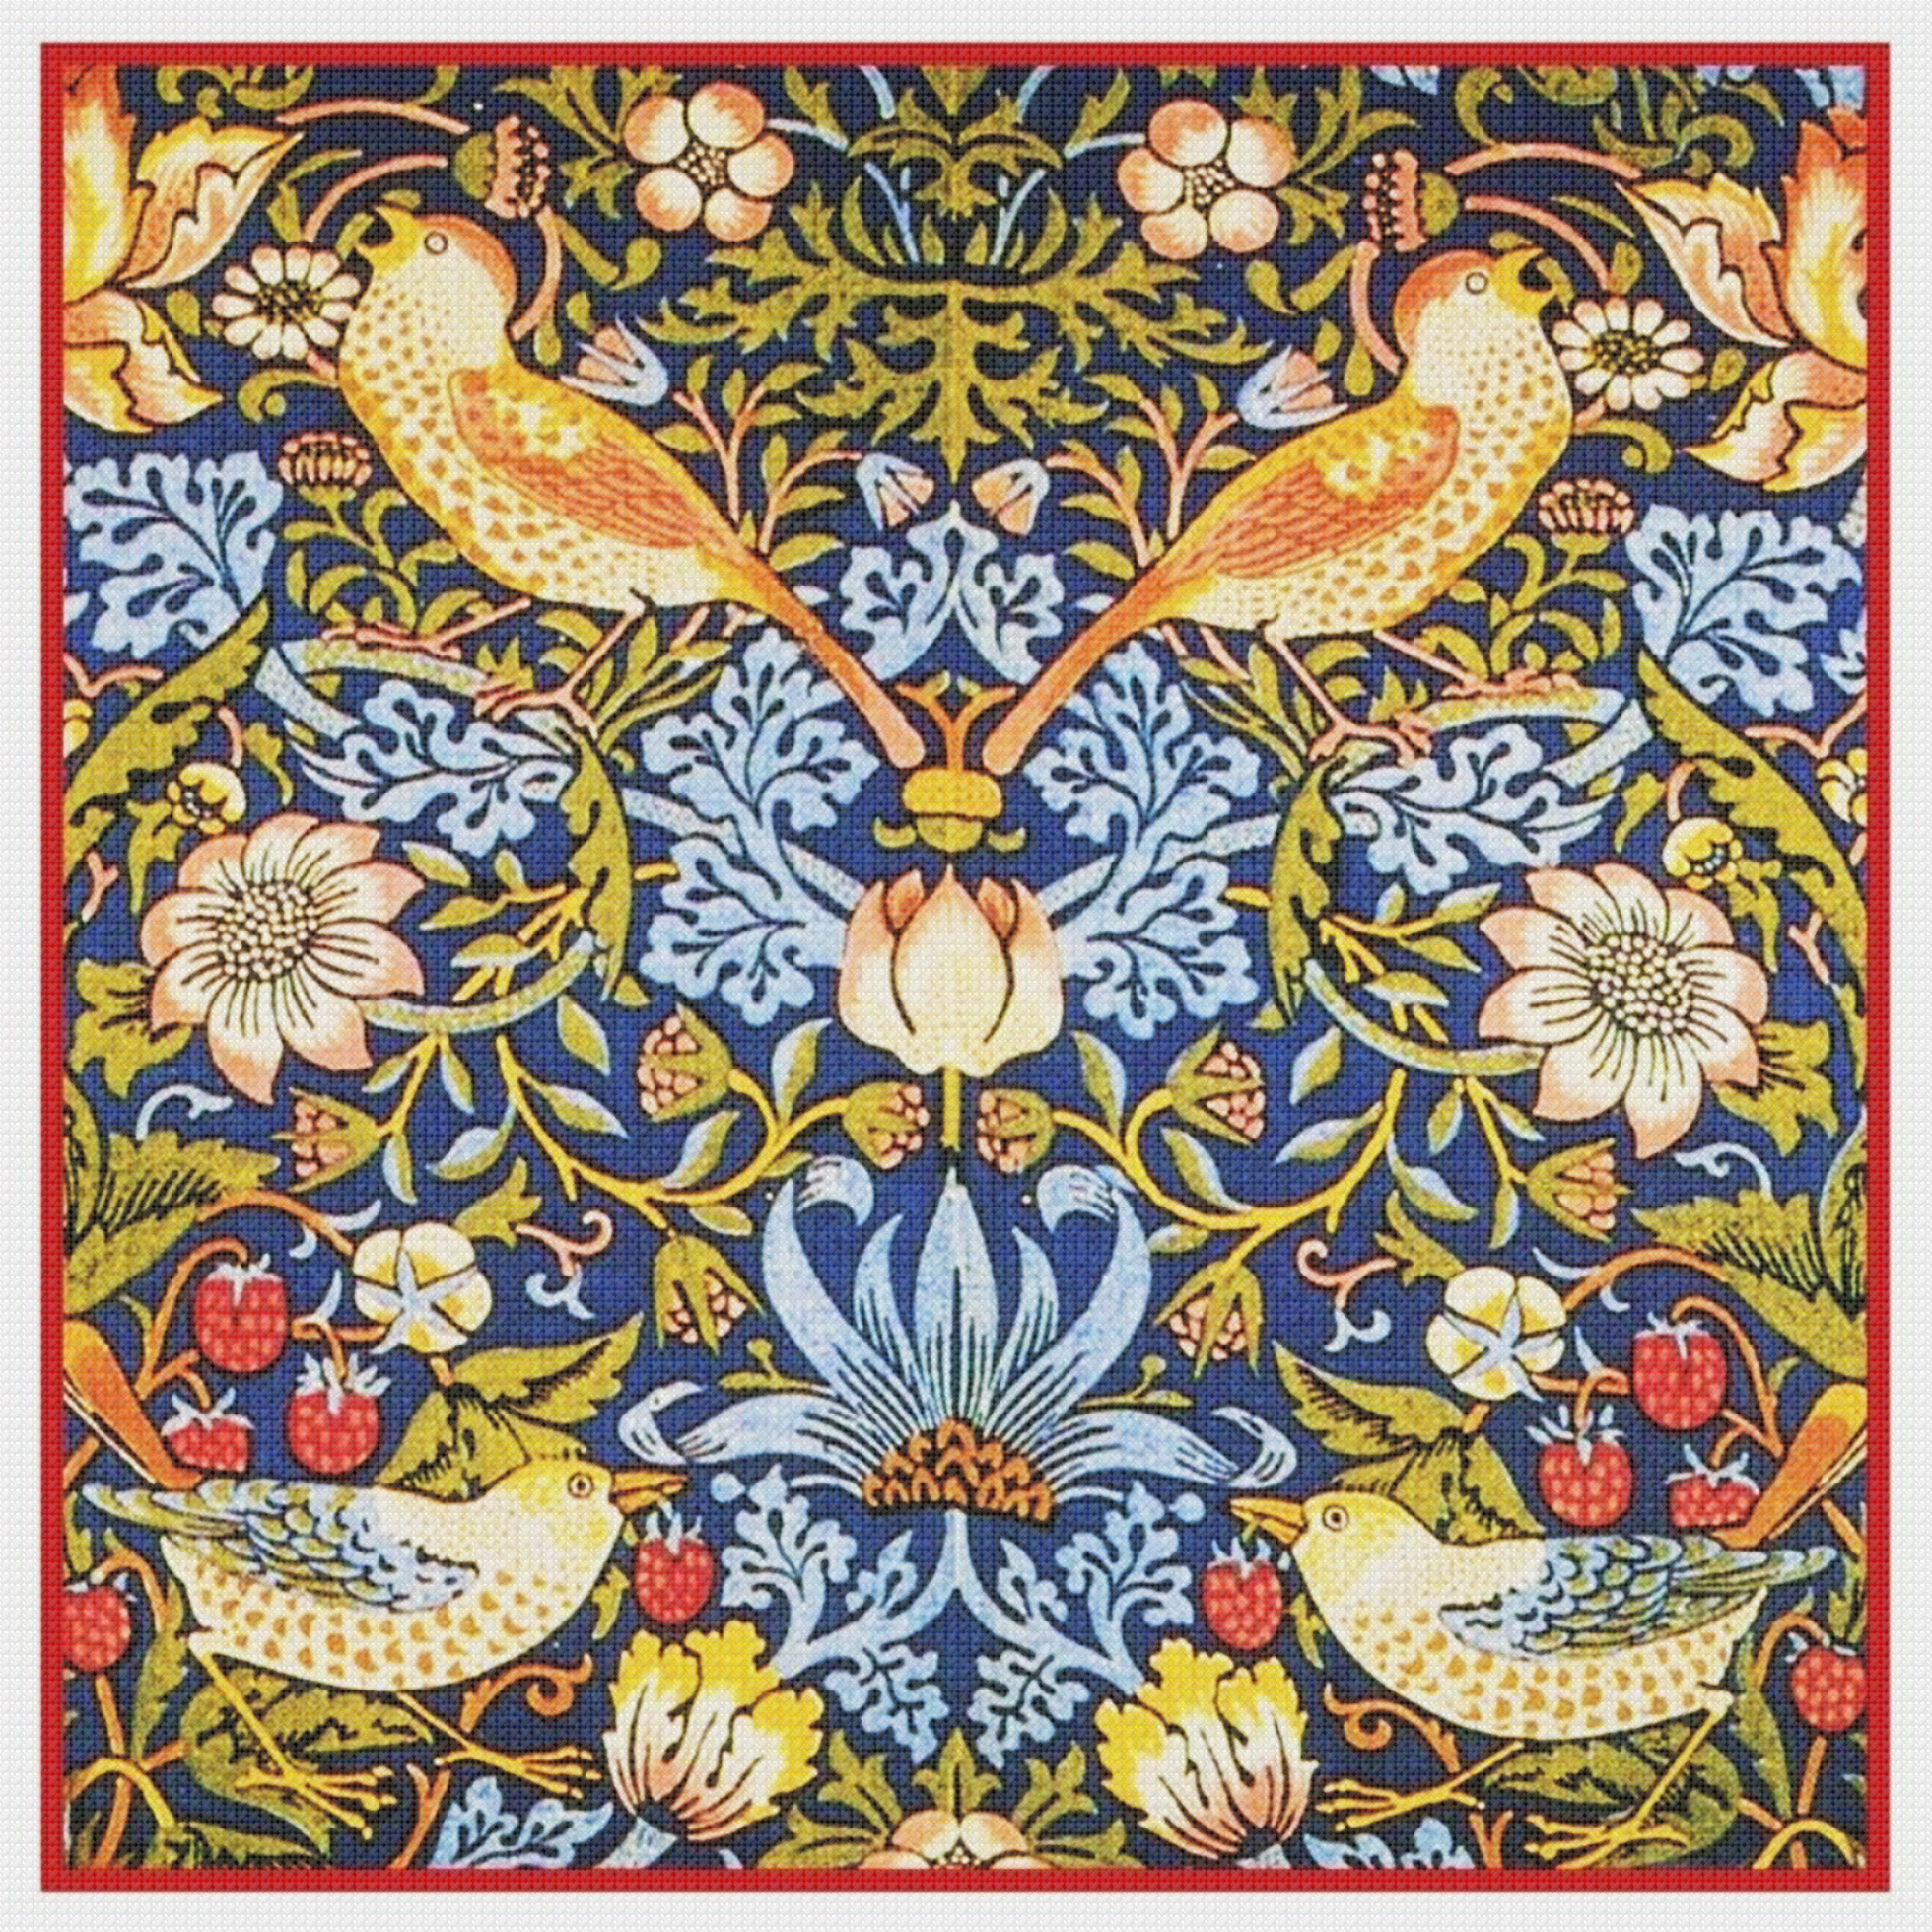 William Morris Red Strawberry Thief Counted Cross Stitch Chart Pattern